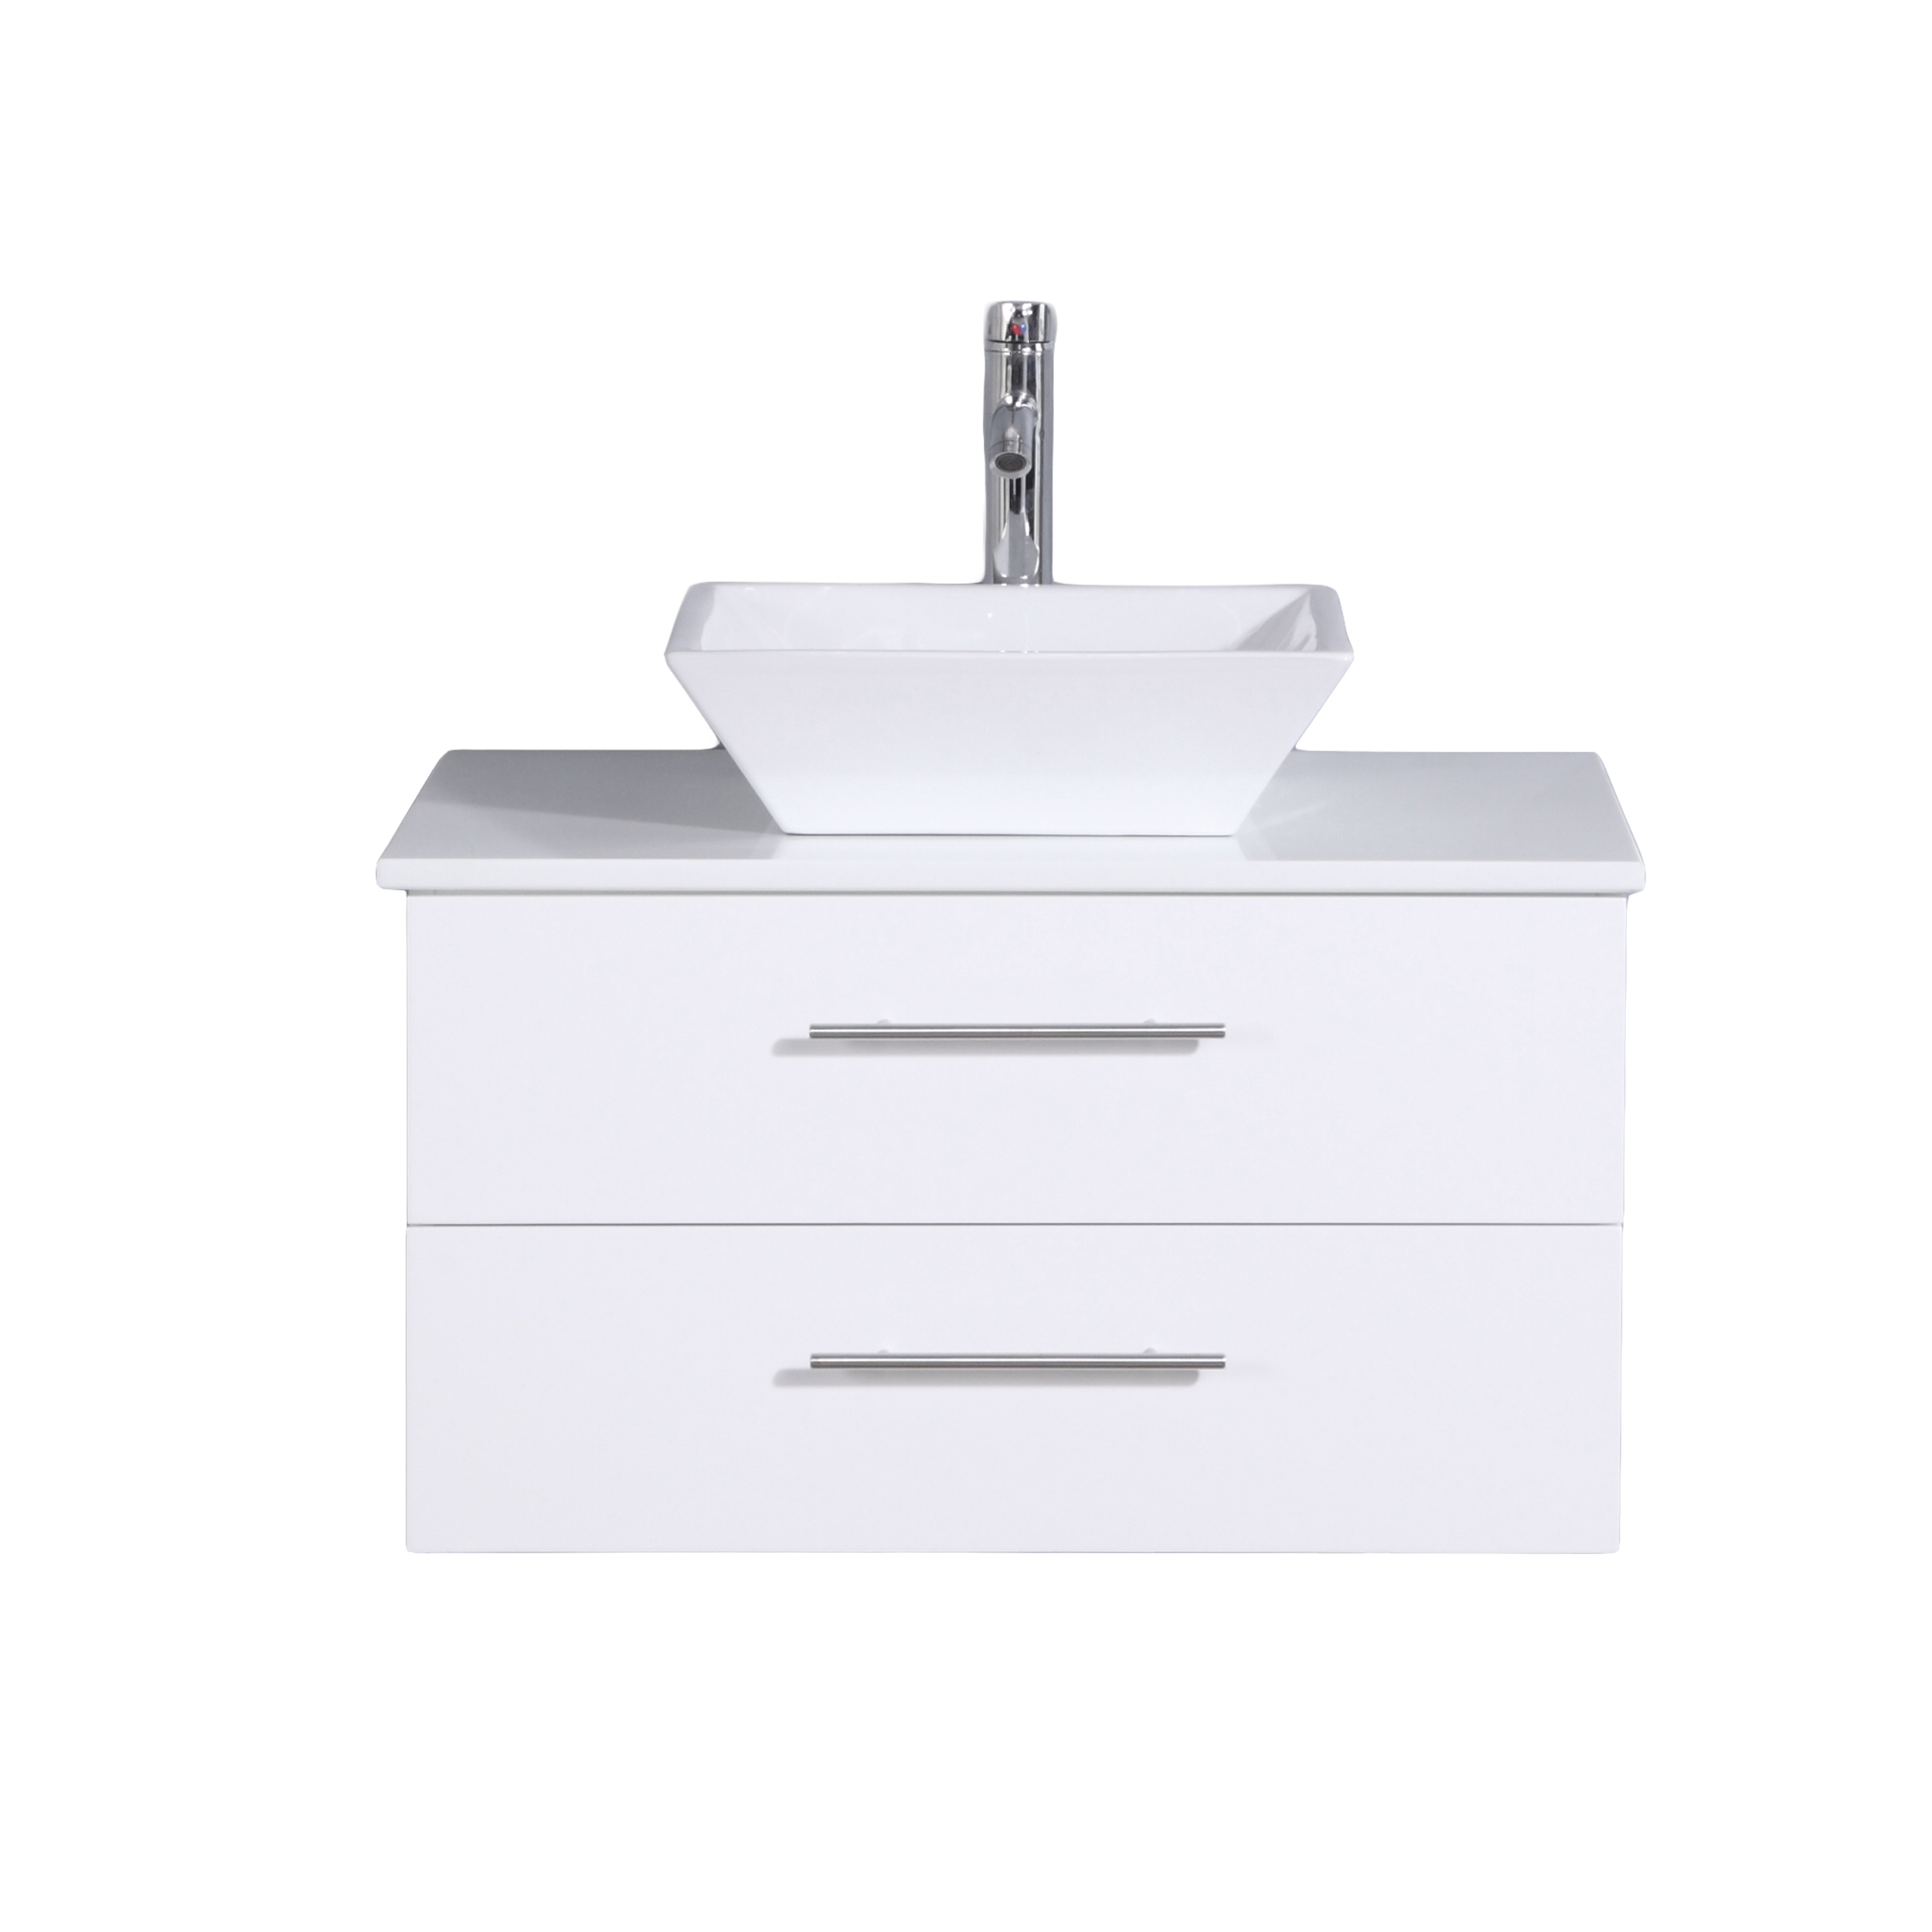 Totti Wave 24 Inch White Modern Bathroom Vanity With Counter Top And Sink Walmart Com Walmart Com